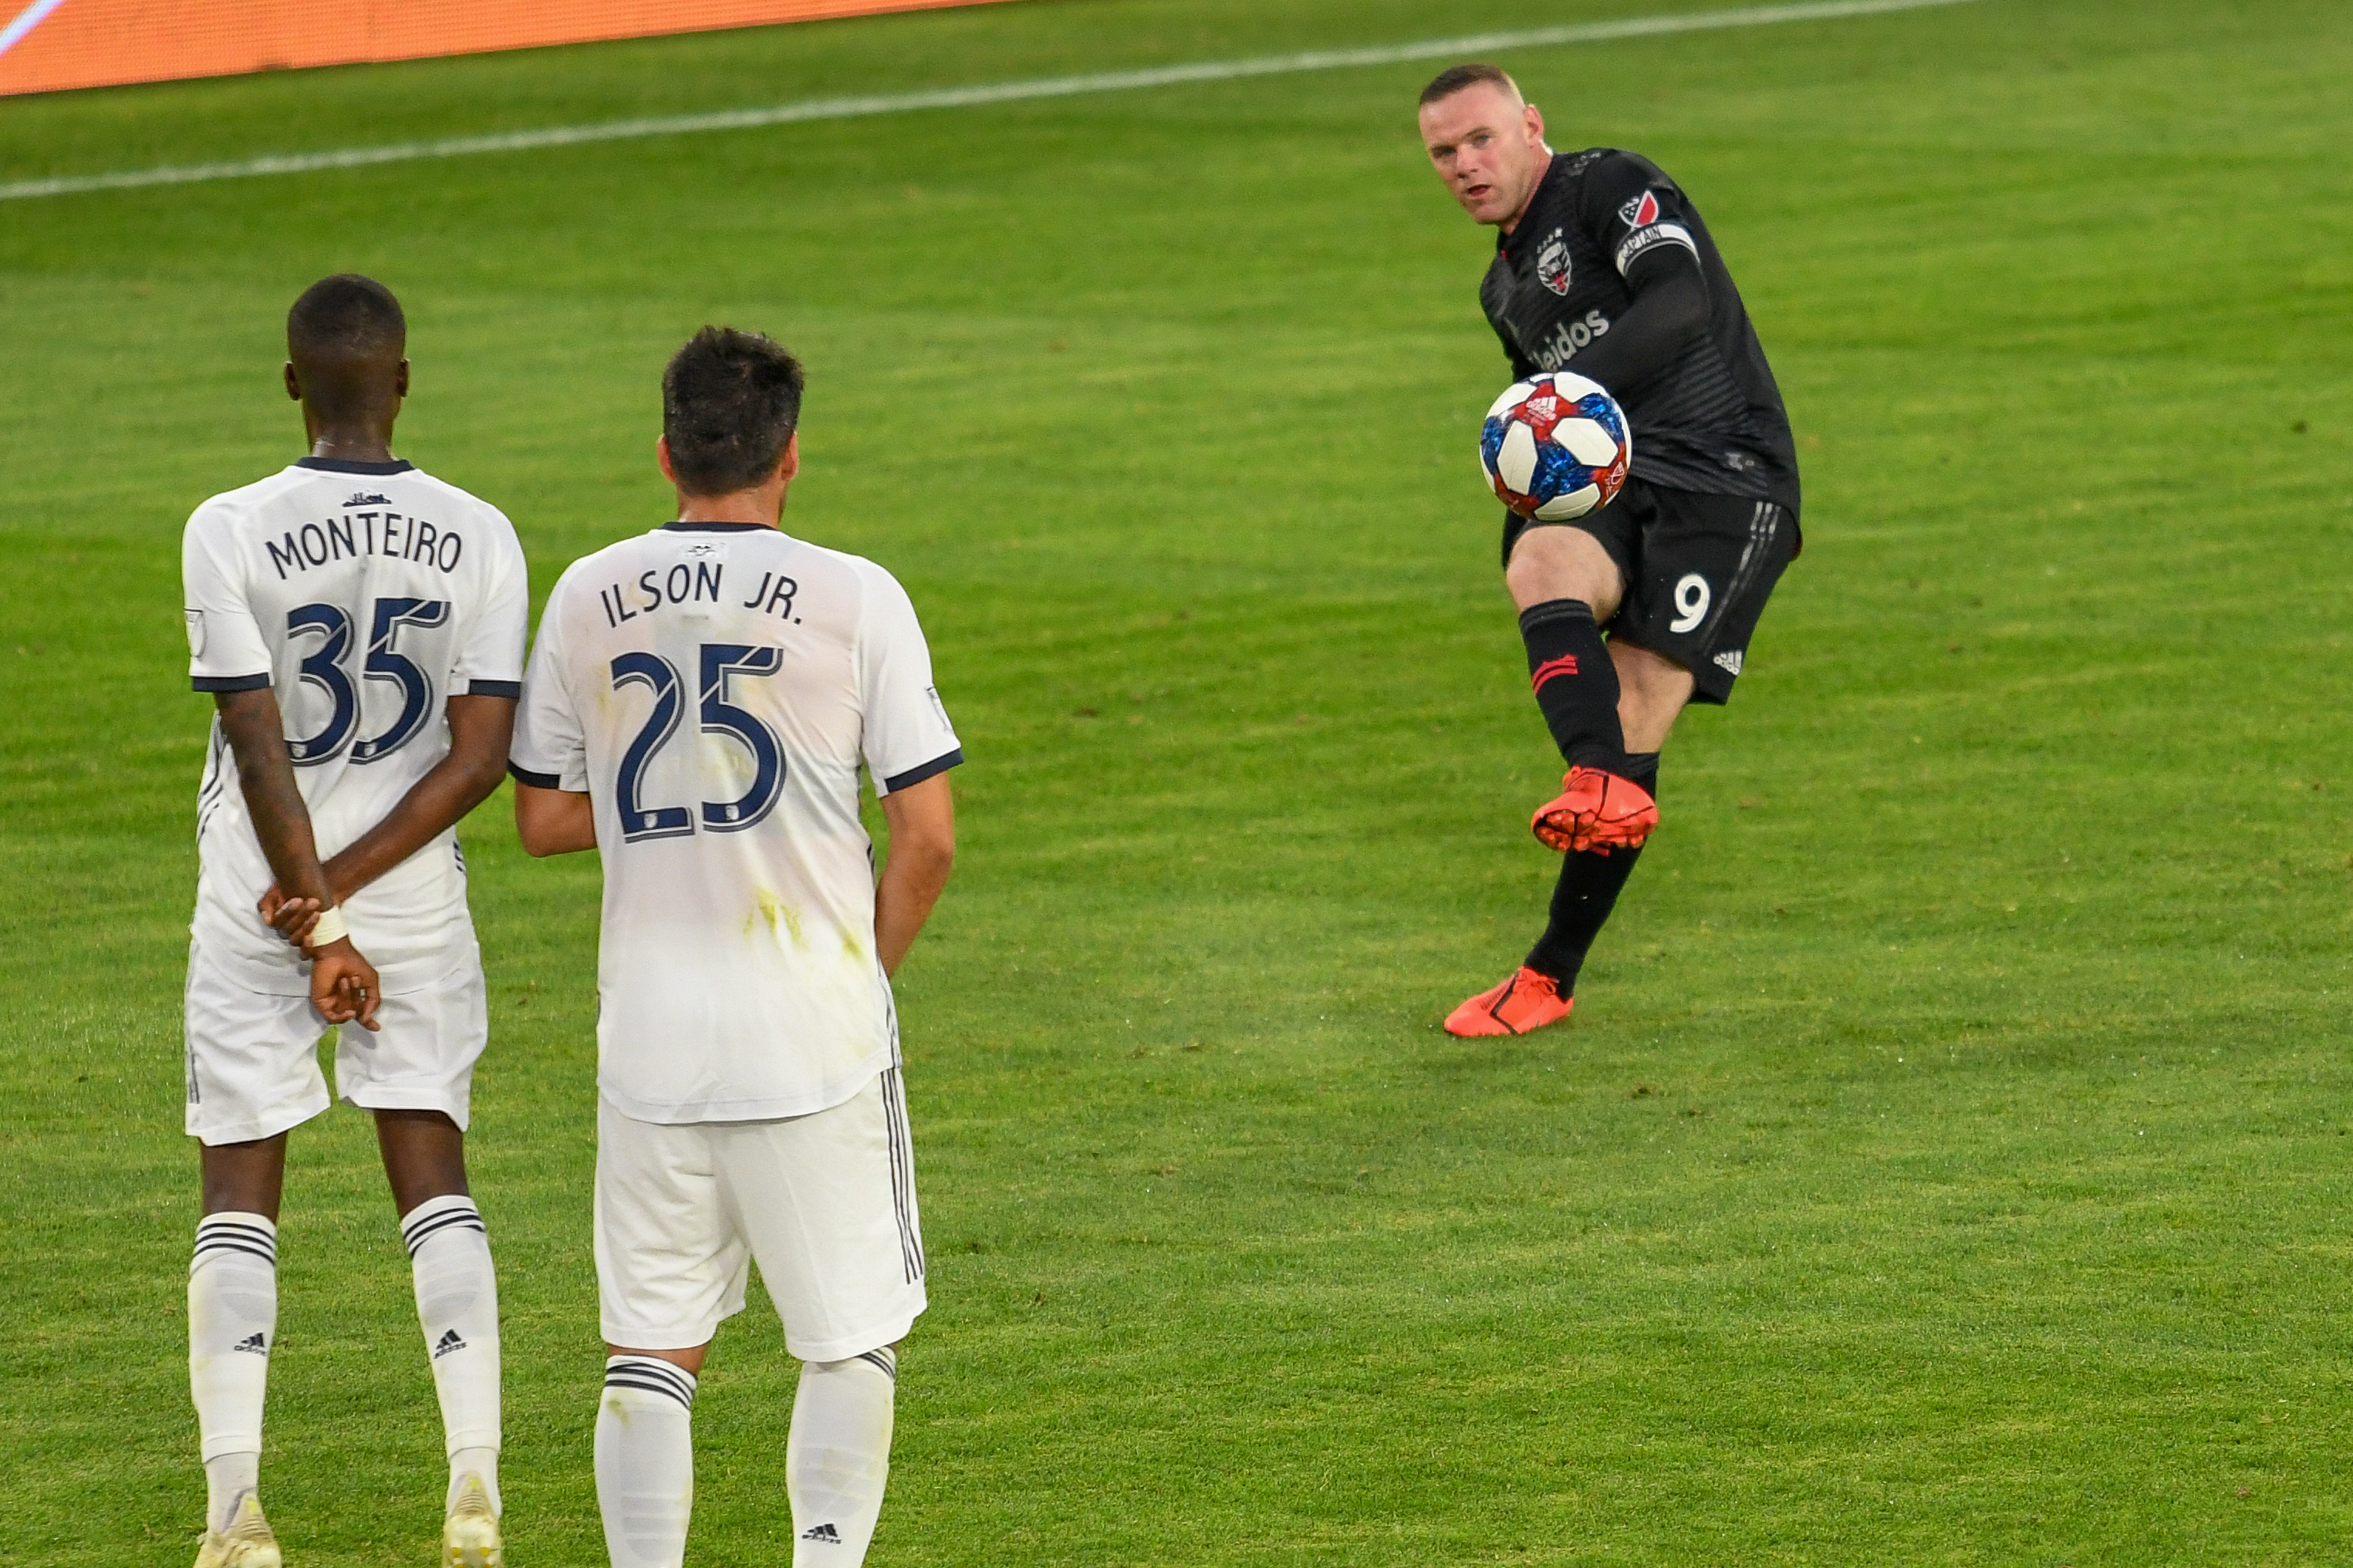 Wayne Rooney (9) takes a penalty kick with Monteiro (35) and Ilsinho(25) making the wall.